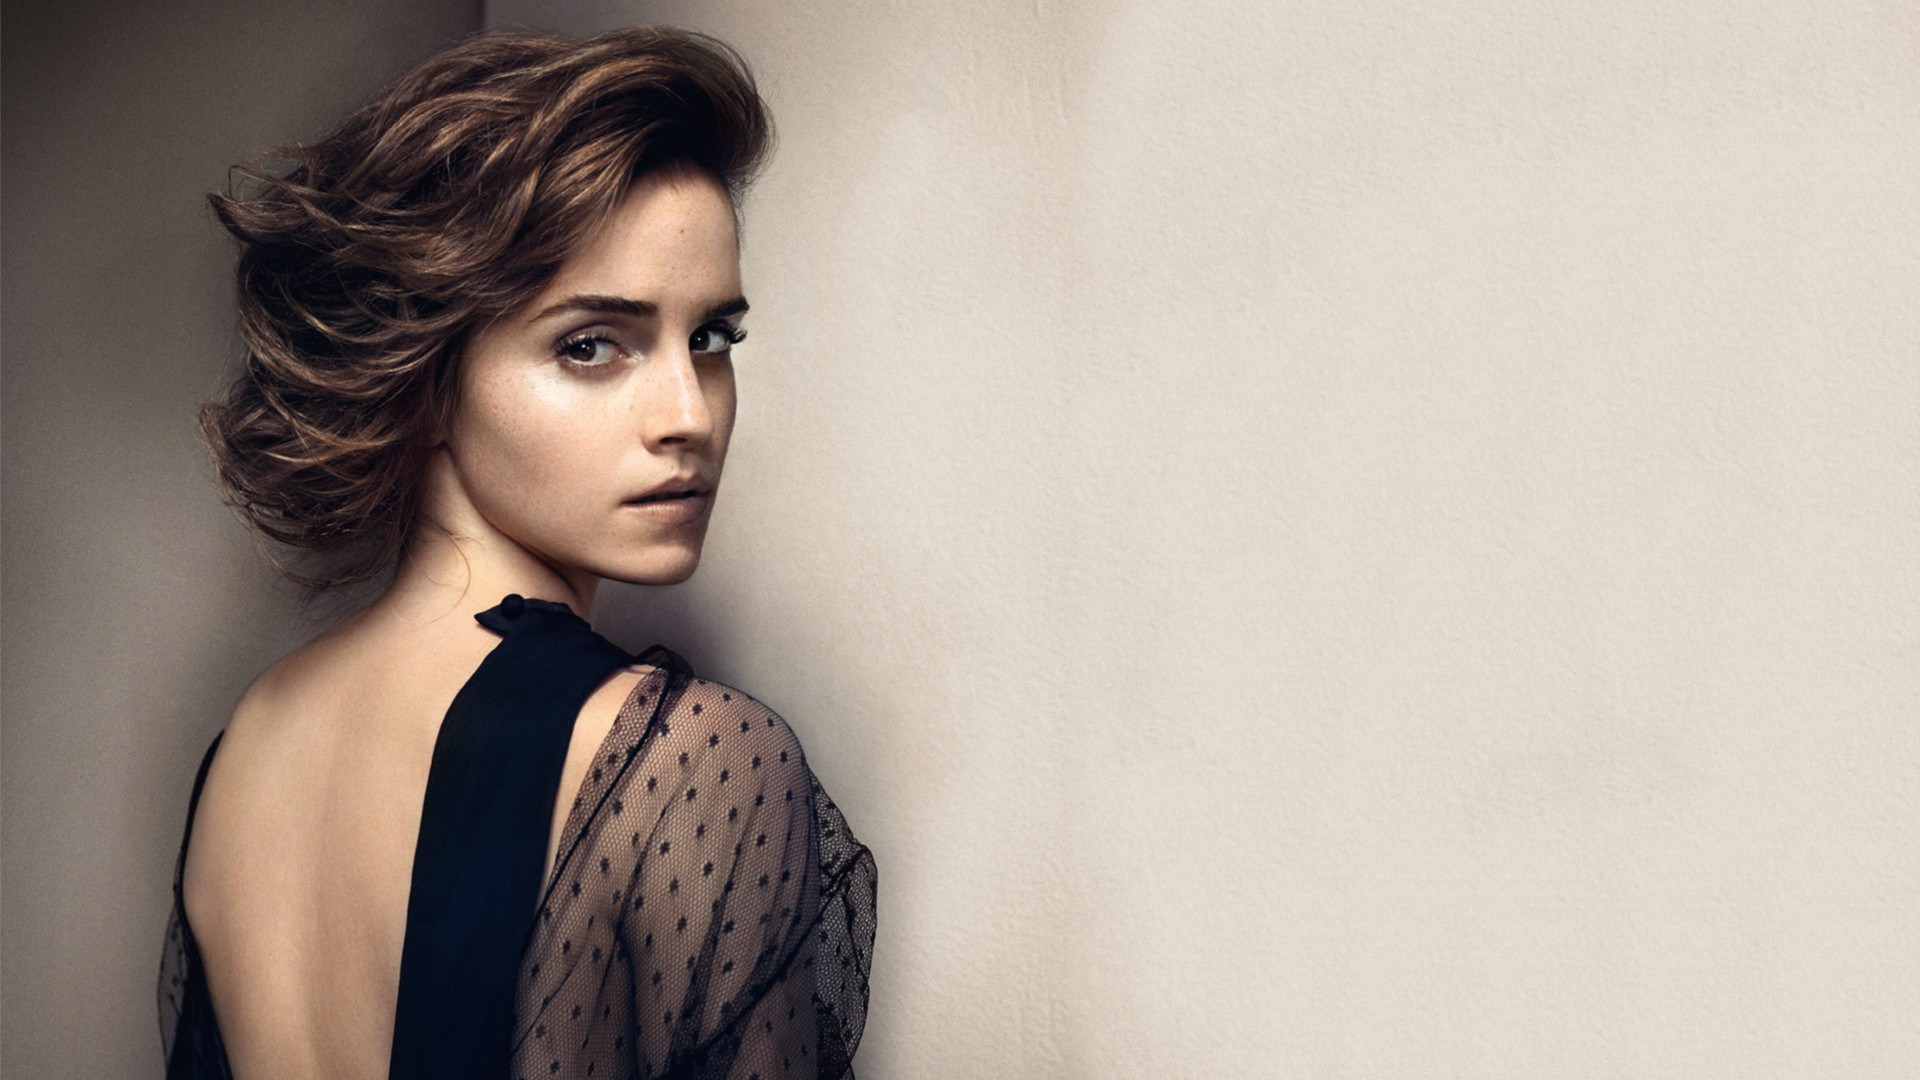 Emma Watson Hd Wallpapers 2015 Wallpapersafari